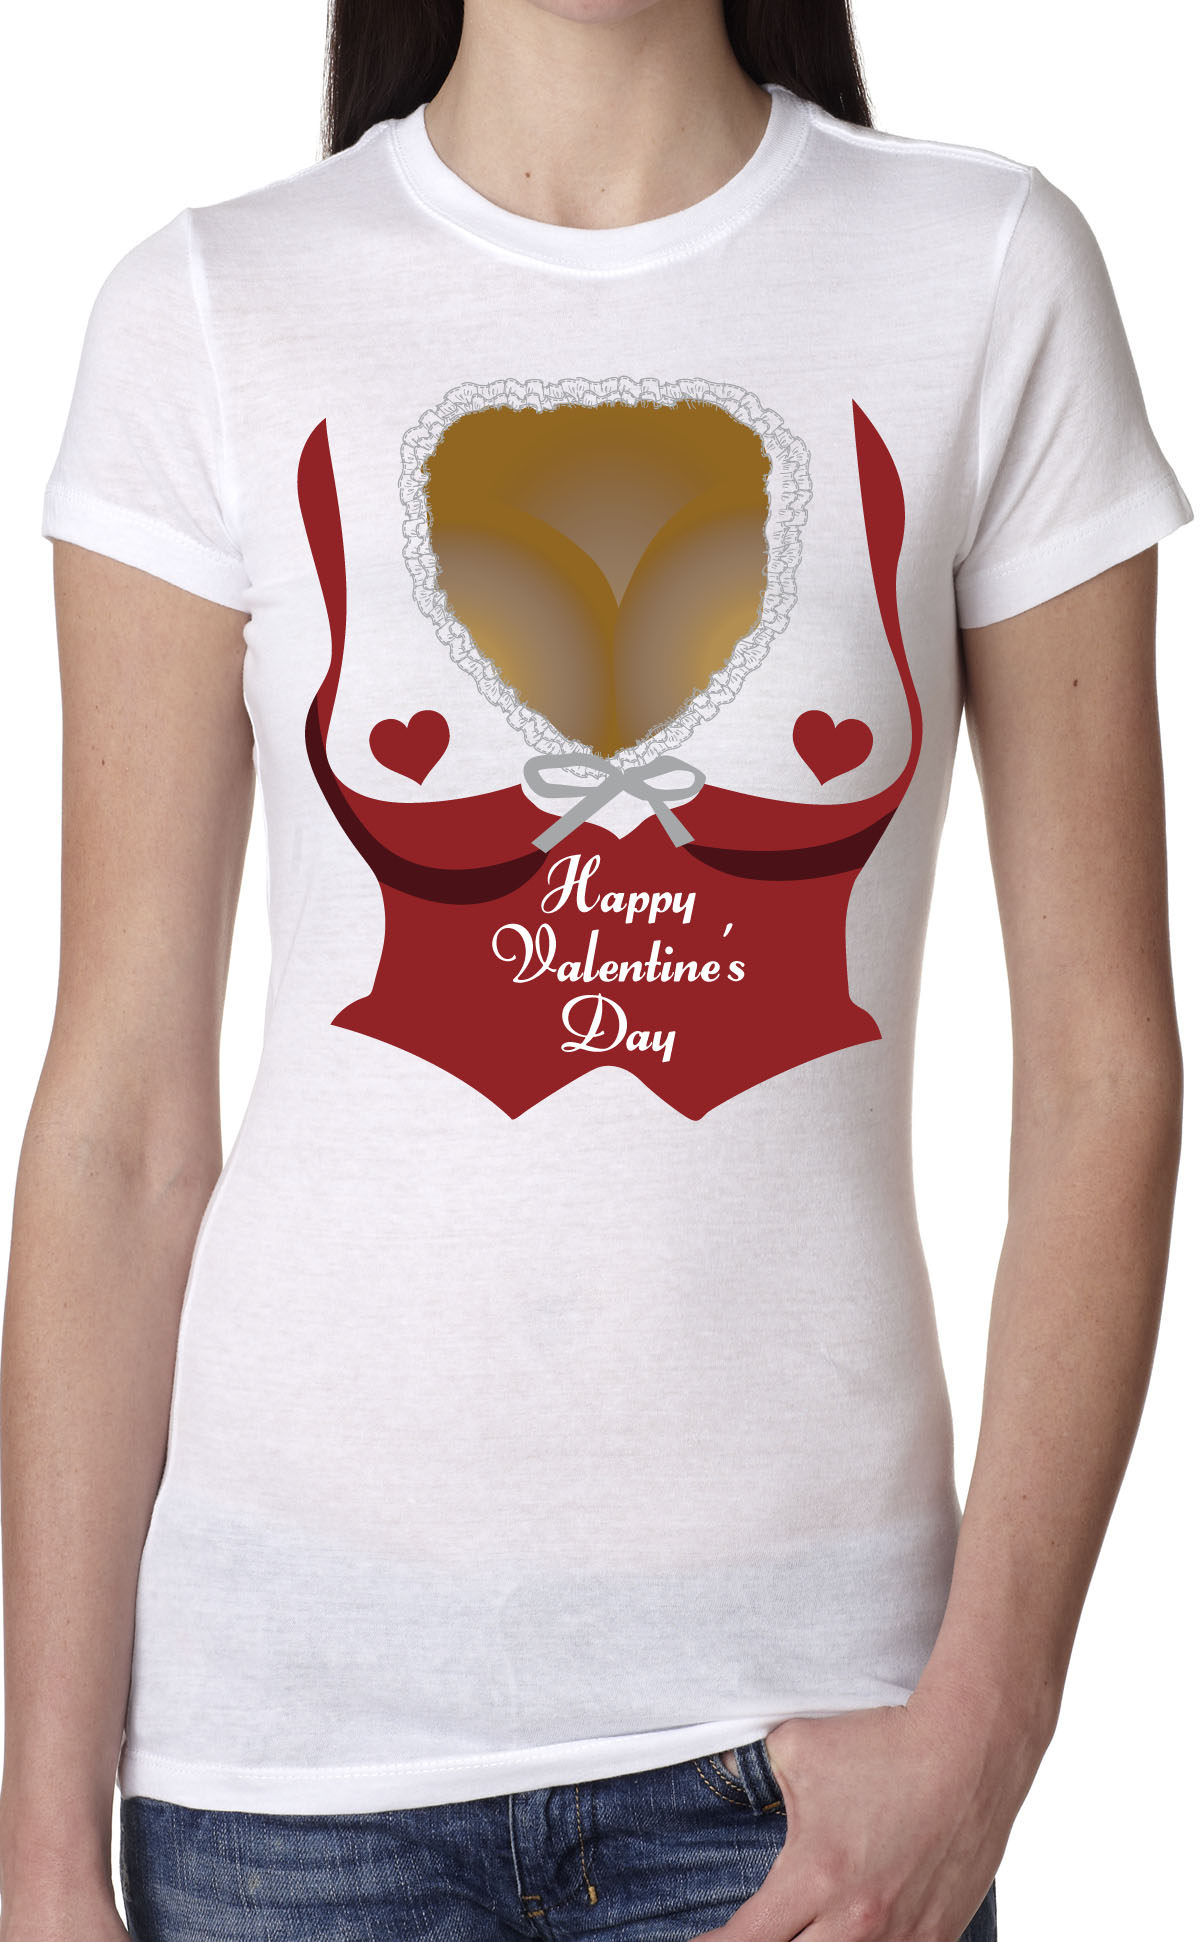 56fc7f460da Womens Valentines Day Cleavage Funny T shirt Hearts Relationship Tee for  Ladies (White) S